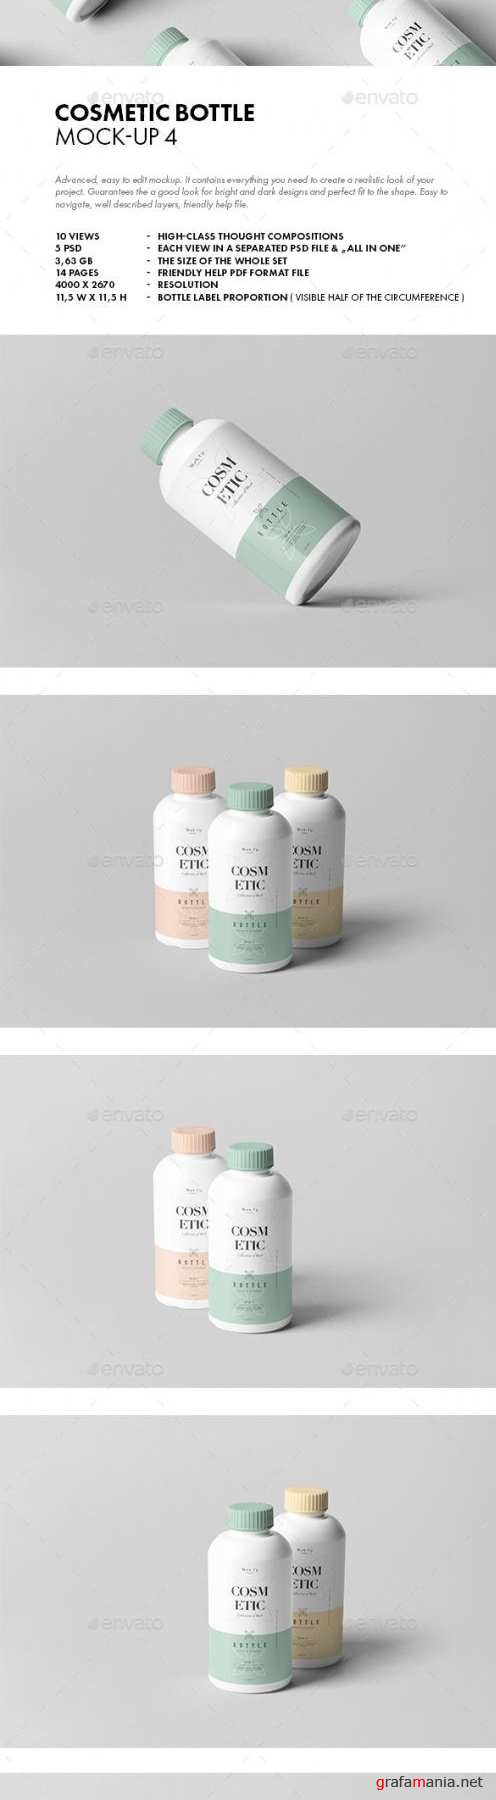 Cosmetic Bottle Mock-up 4 - 21337398